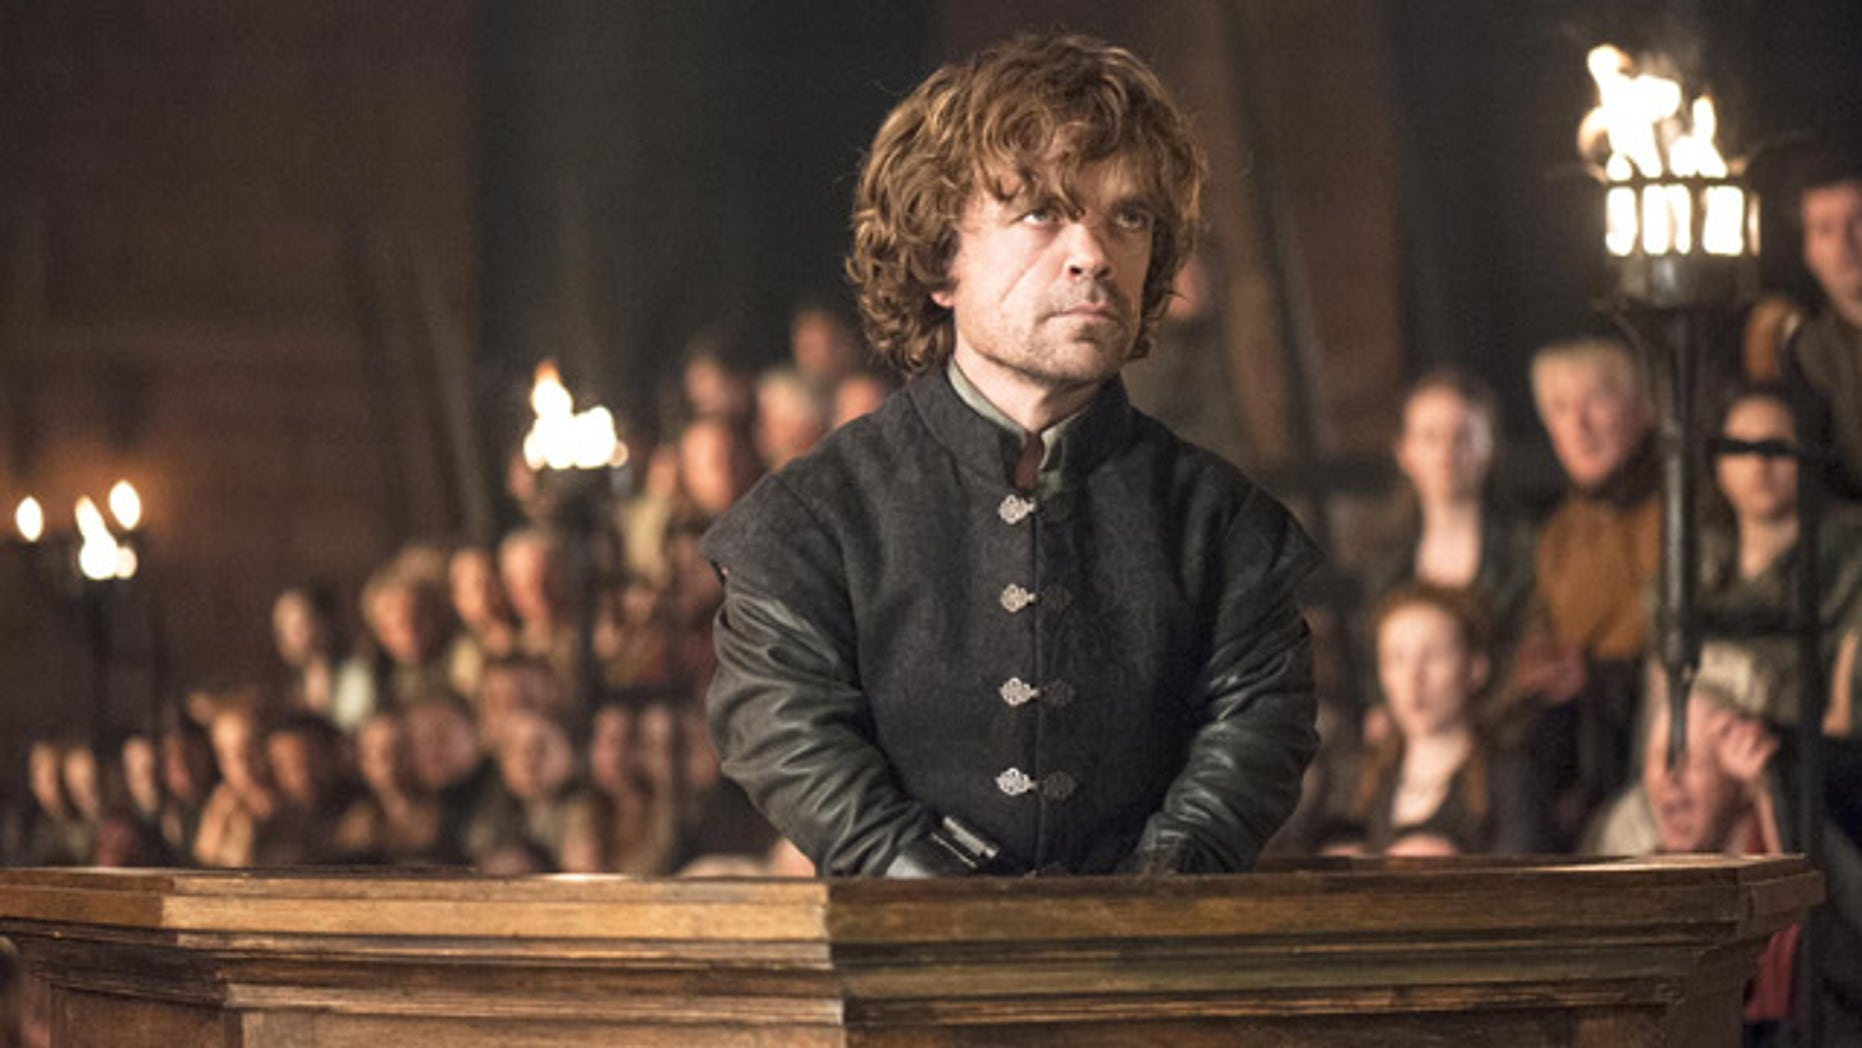 Tyrion Lannister (Peter Dinklage) in the dock on 'Game of Thrones' (Courtesy HBO)